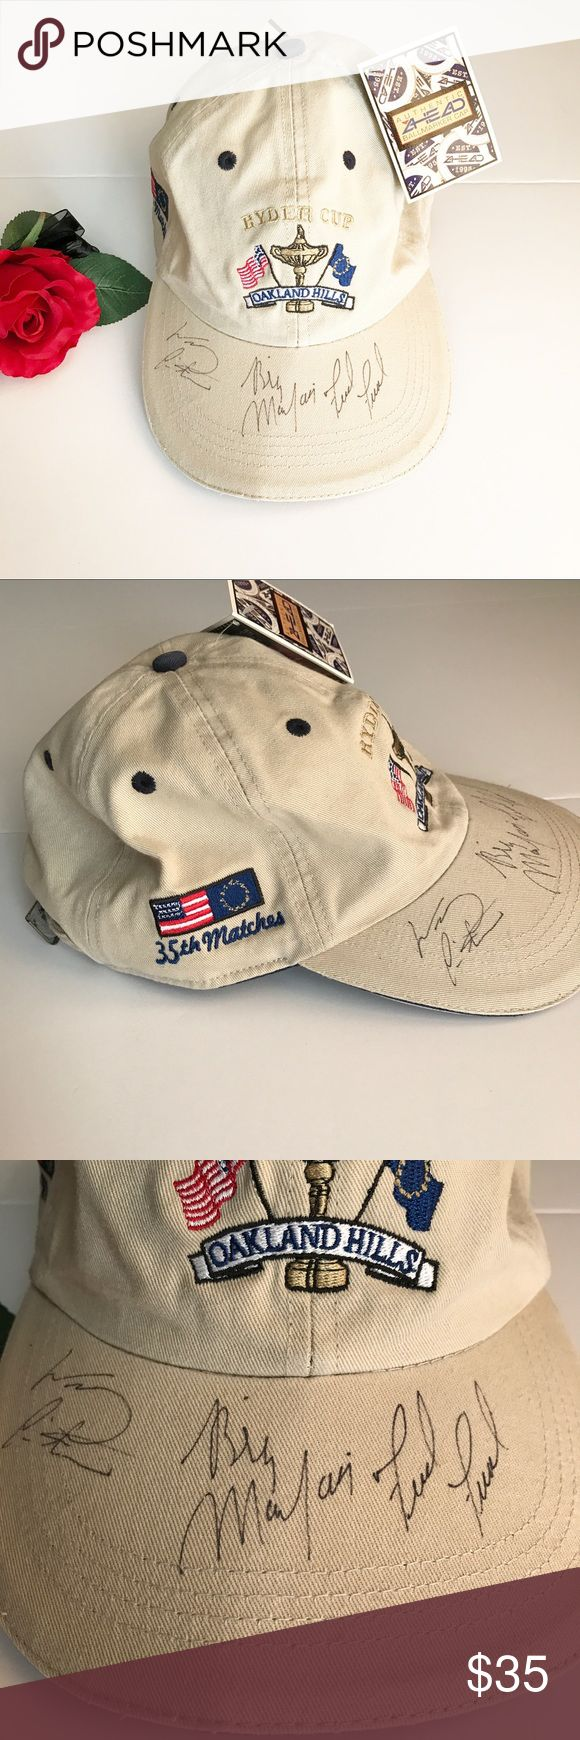 Fred Funk & Billy Mayfair autographed baseball cap A collector's item for the golf fan. This baseball cap is autographed by Fred Funk and Billy Mayfair. New with tag. Accessories Hats